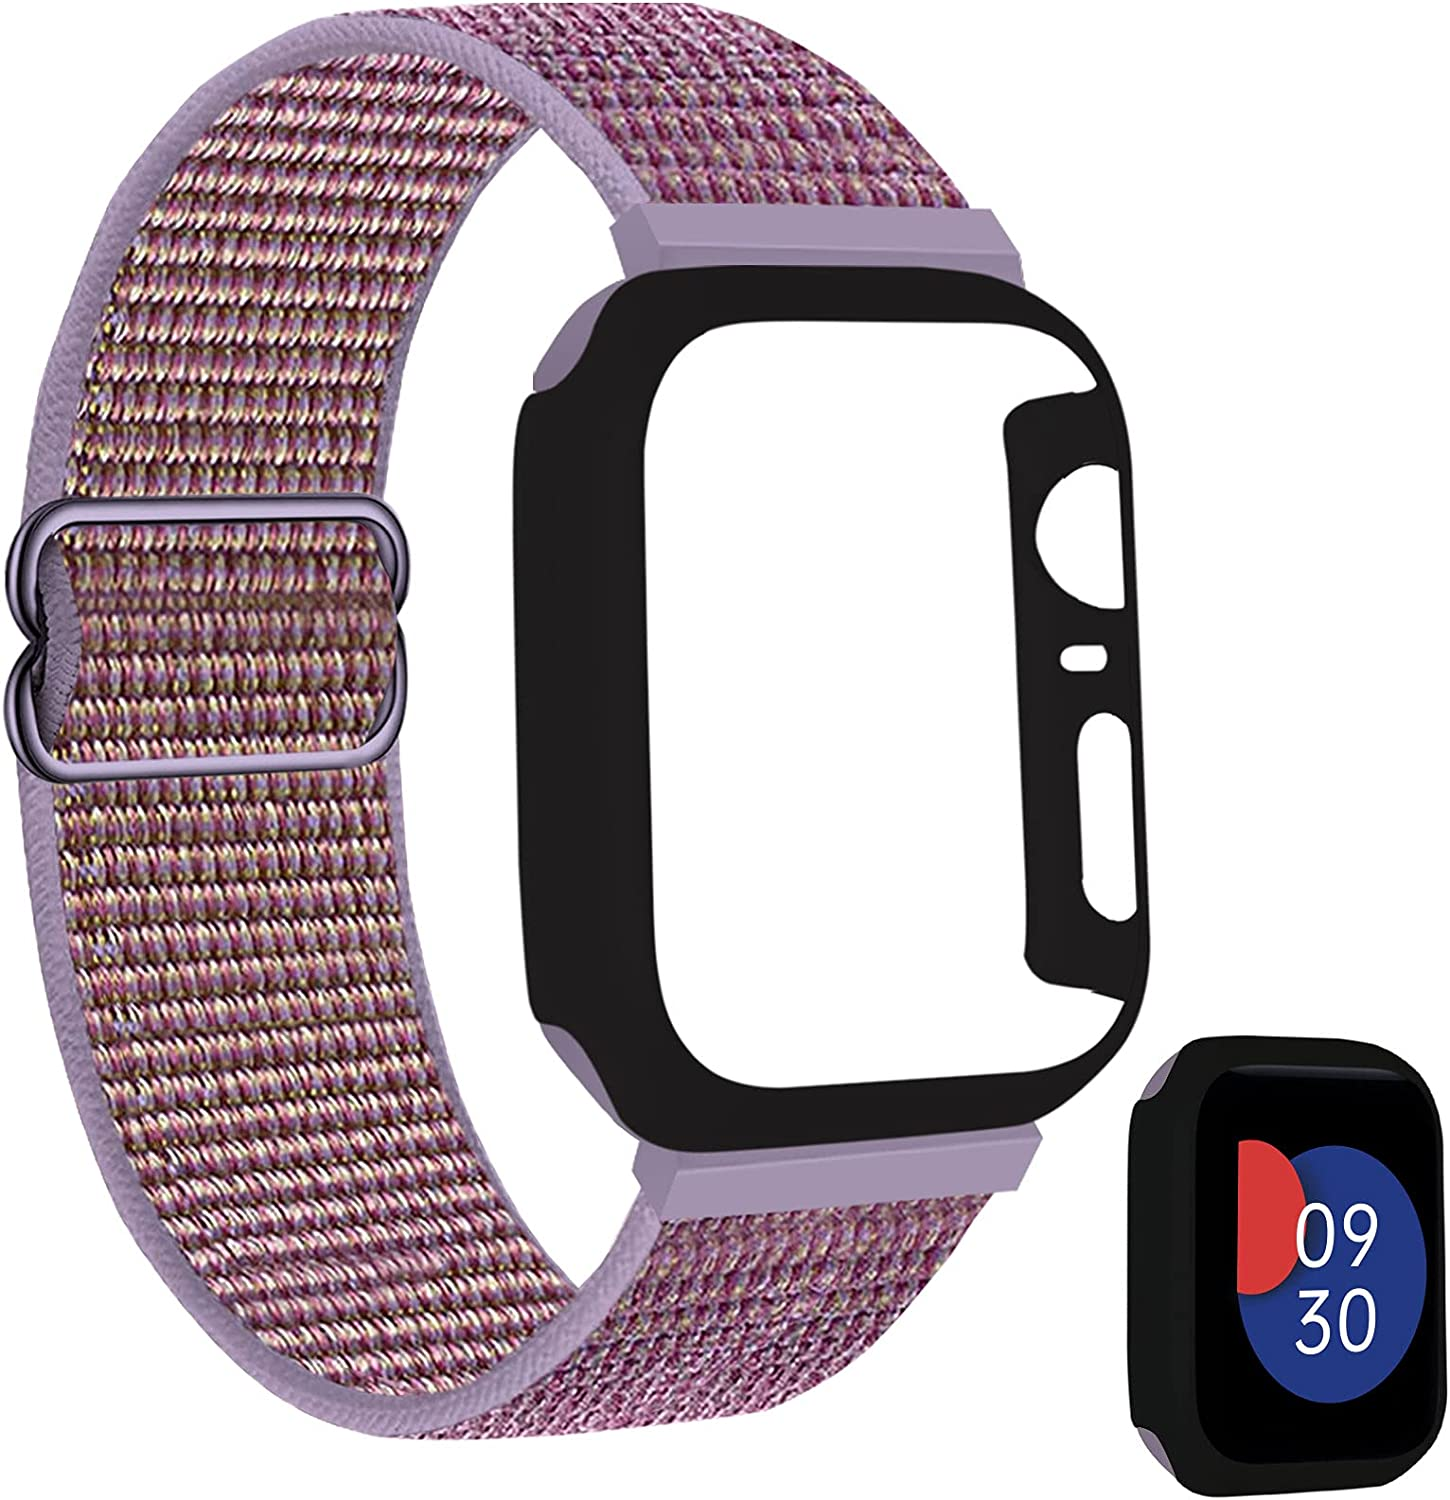 FnKer Nylon Band with Case Compatible for Apple Watch Band 38mm 40mm 42mm 44mm, Sport Braided Solo Loop Velcro Breathable Soft Nylon Replacement Strap Compatible with iWatch Series 1/2/3/4/5/6/SE